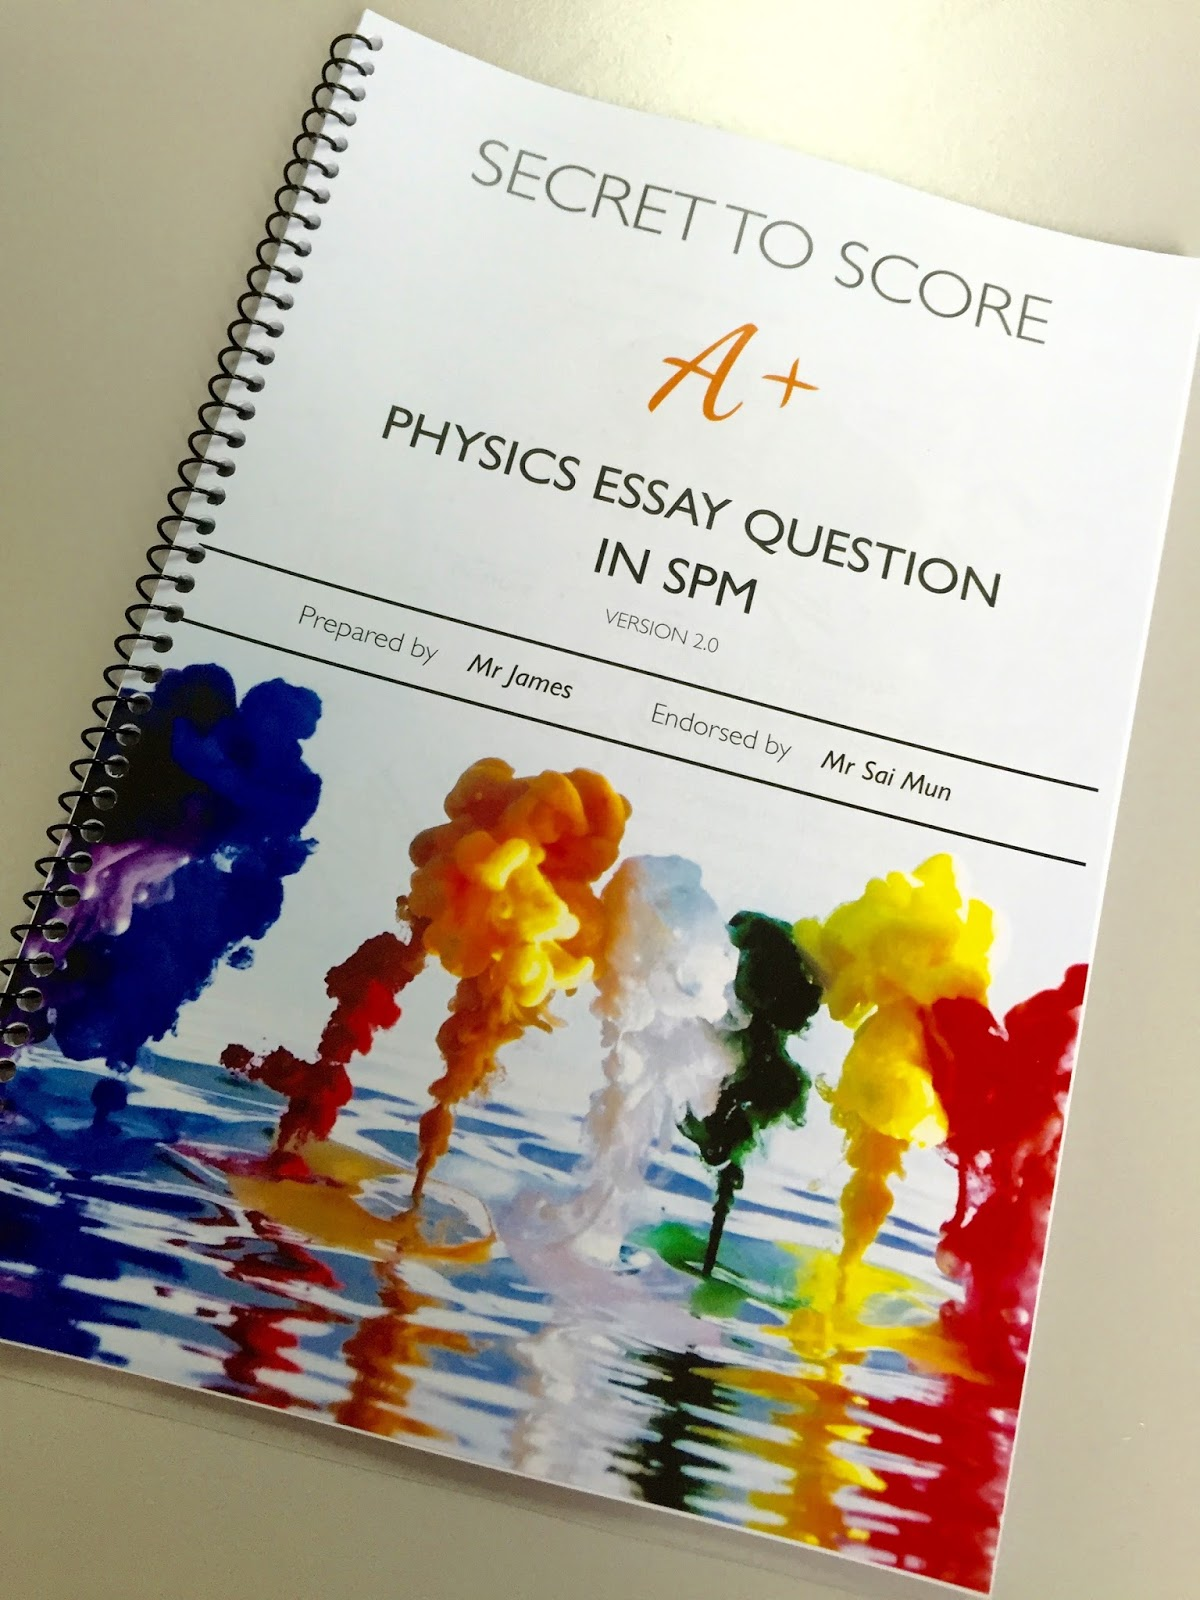 secret to score a physics essay questions in spm version 2 0 mr secret to score a physics essay questions in spm version 2 0